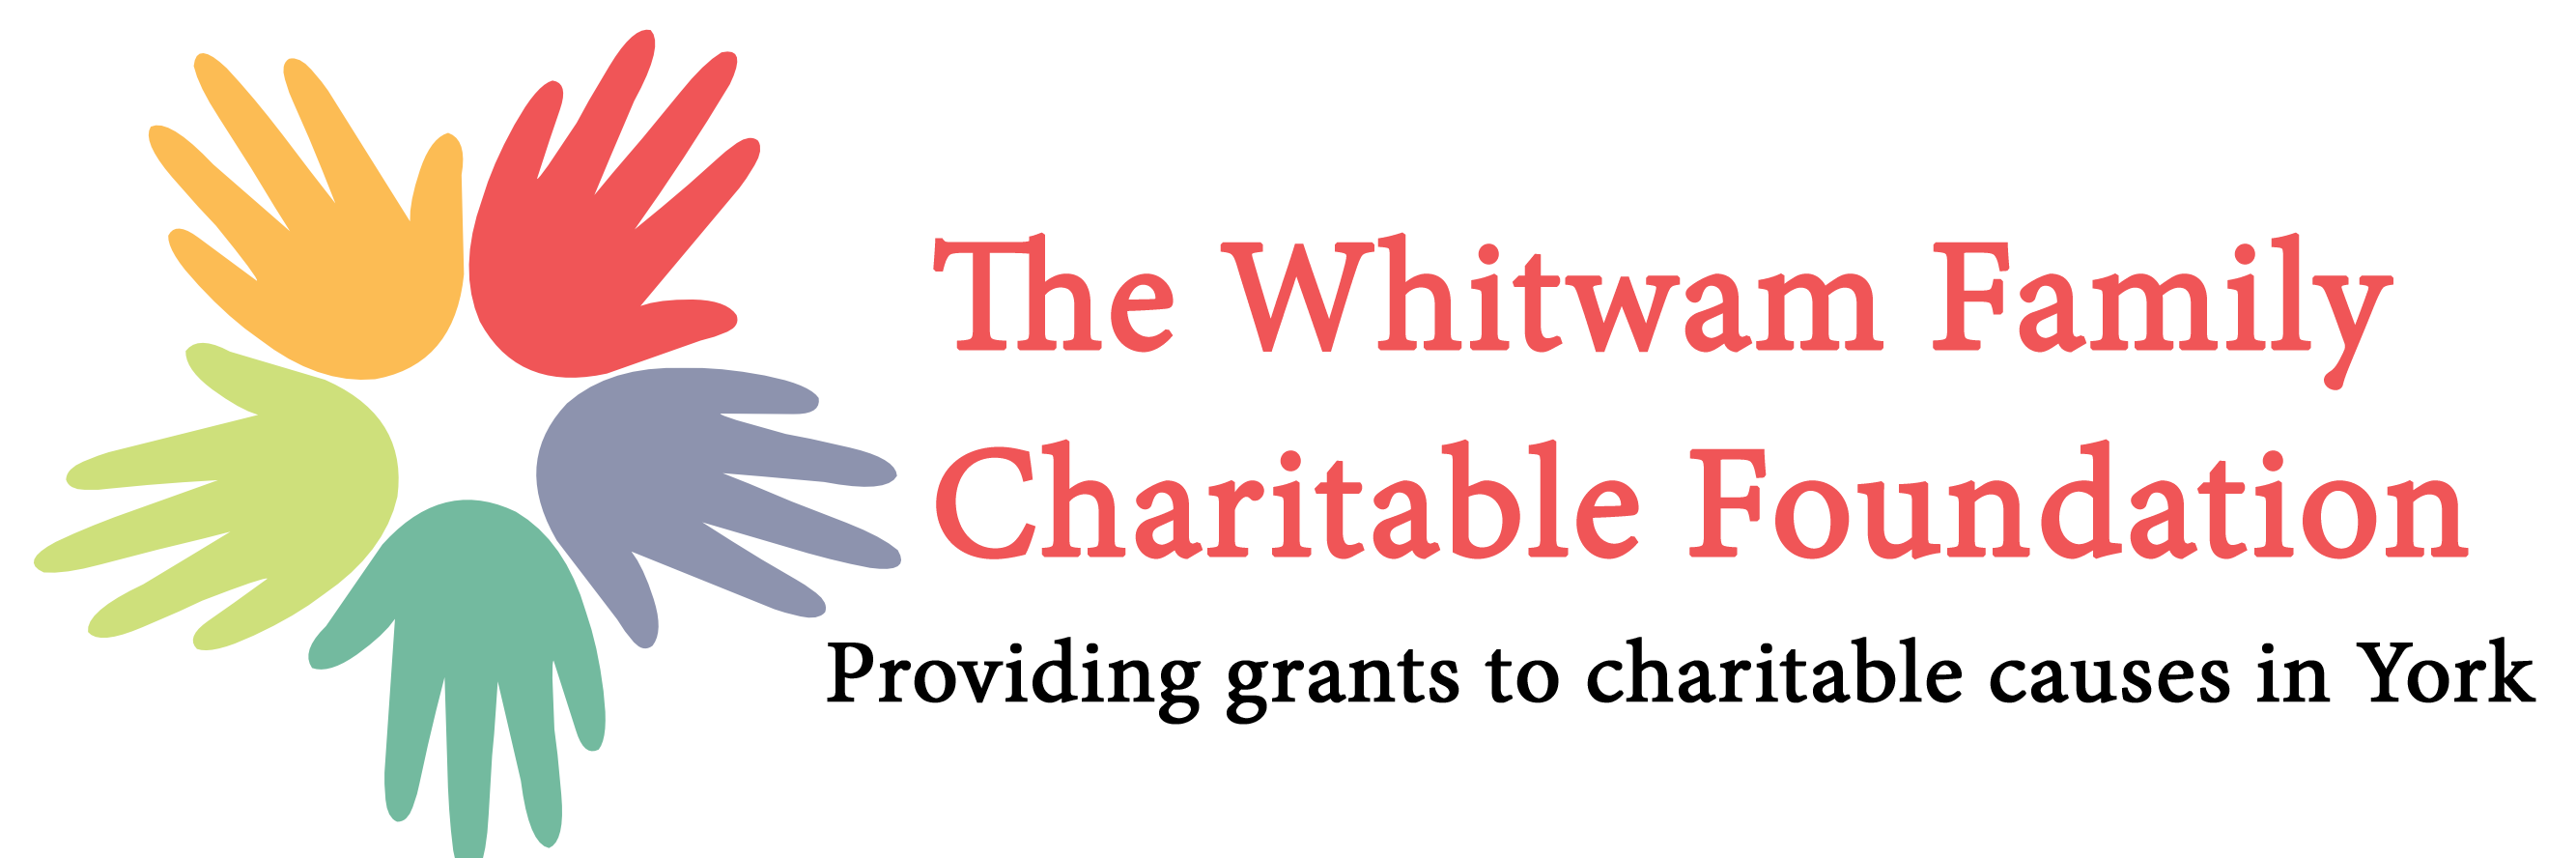 The Whitwam Family Charitable Foundation